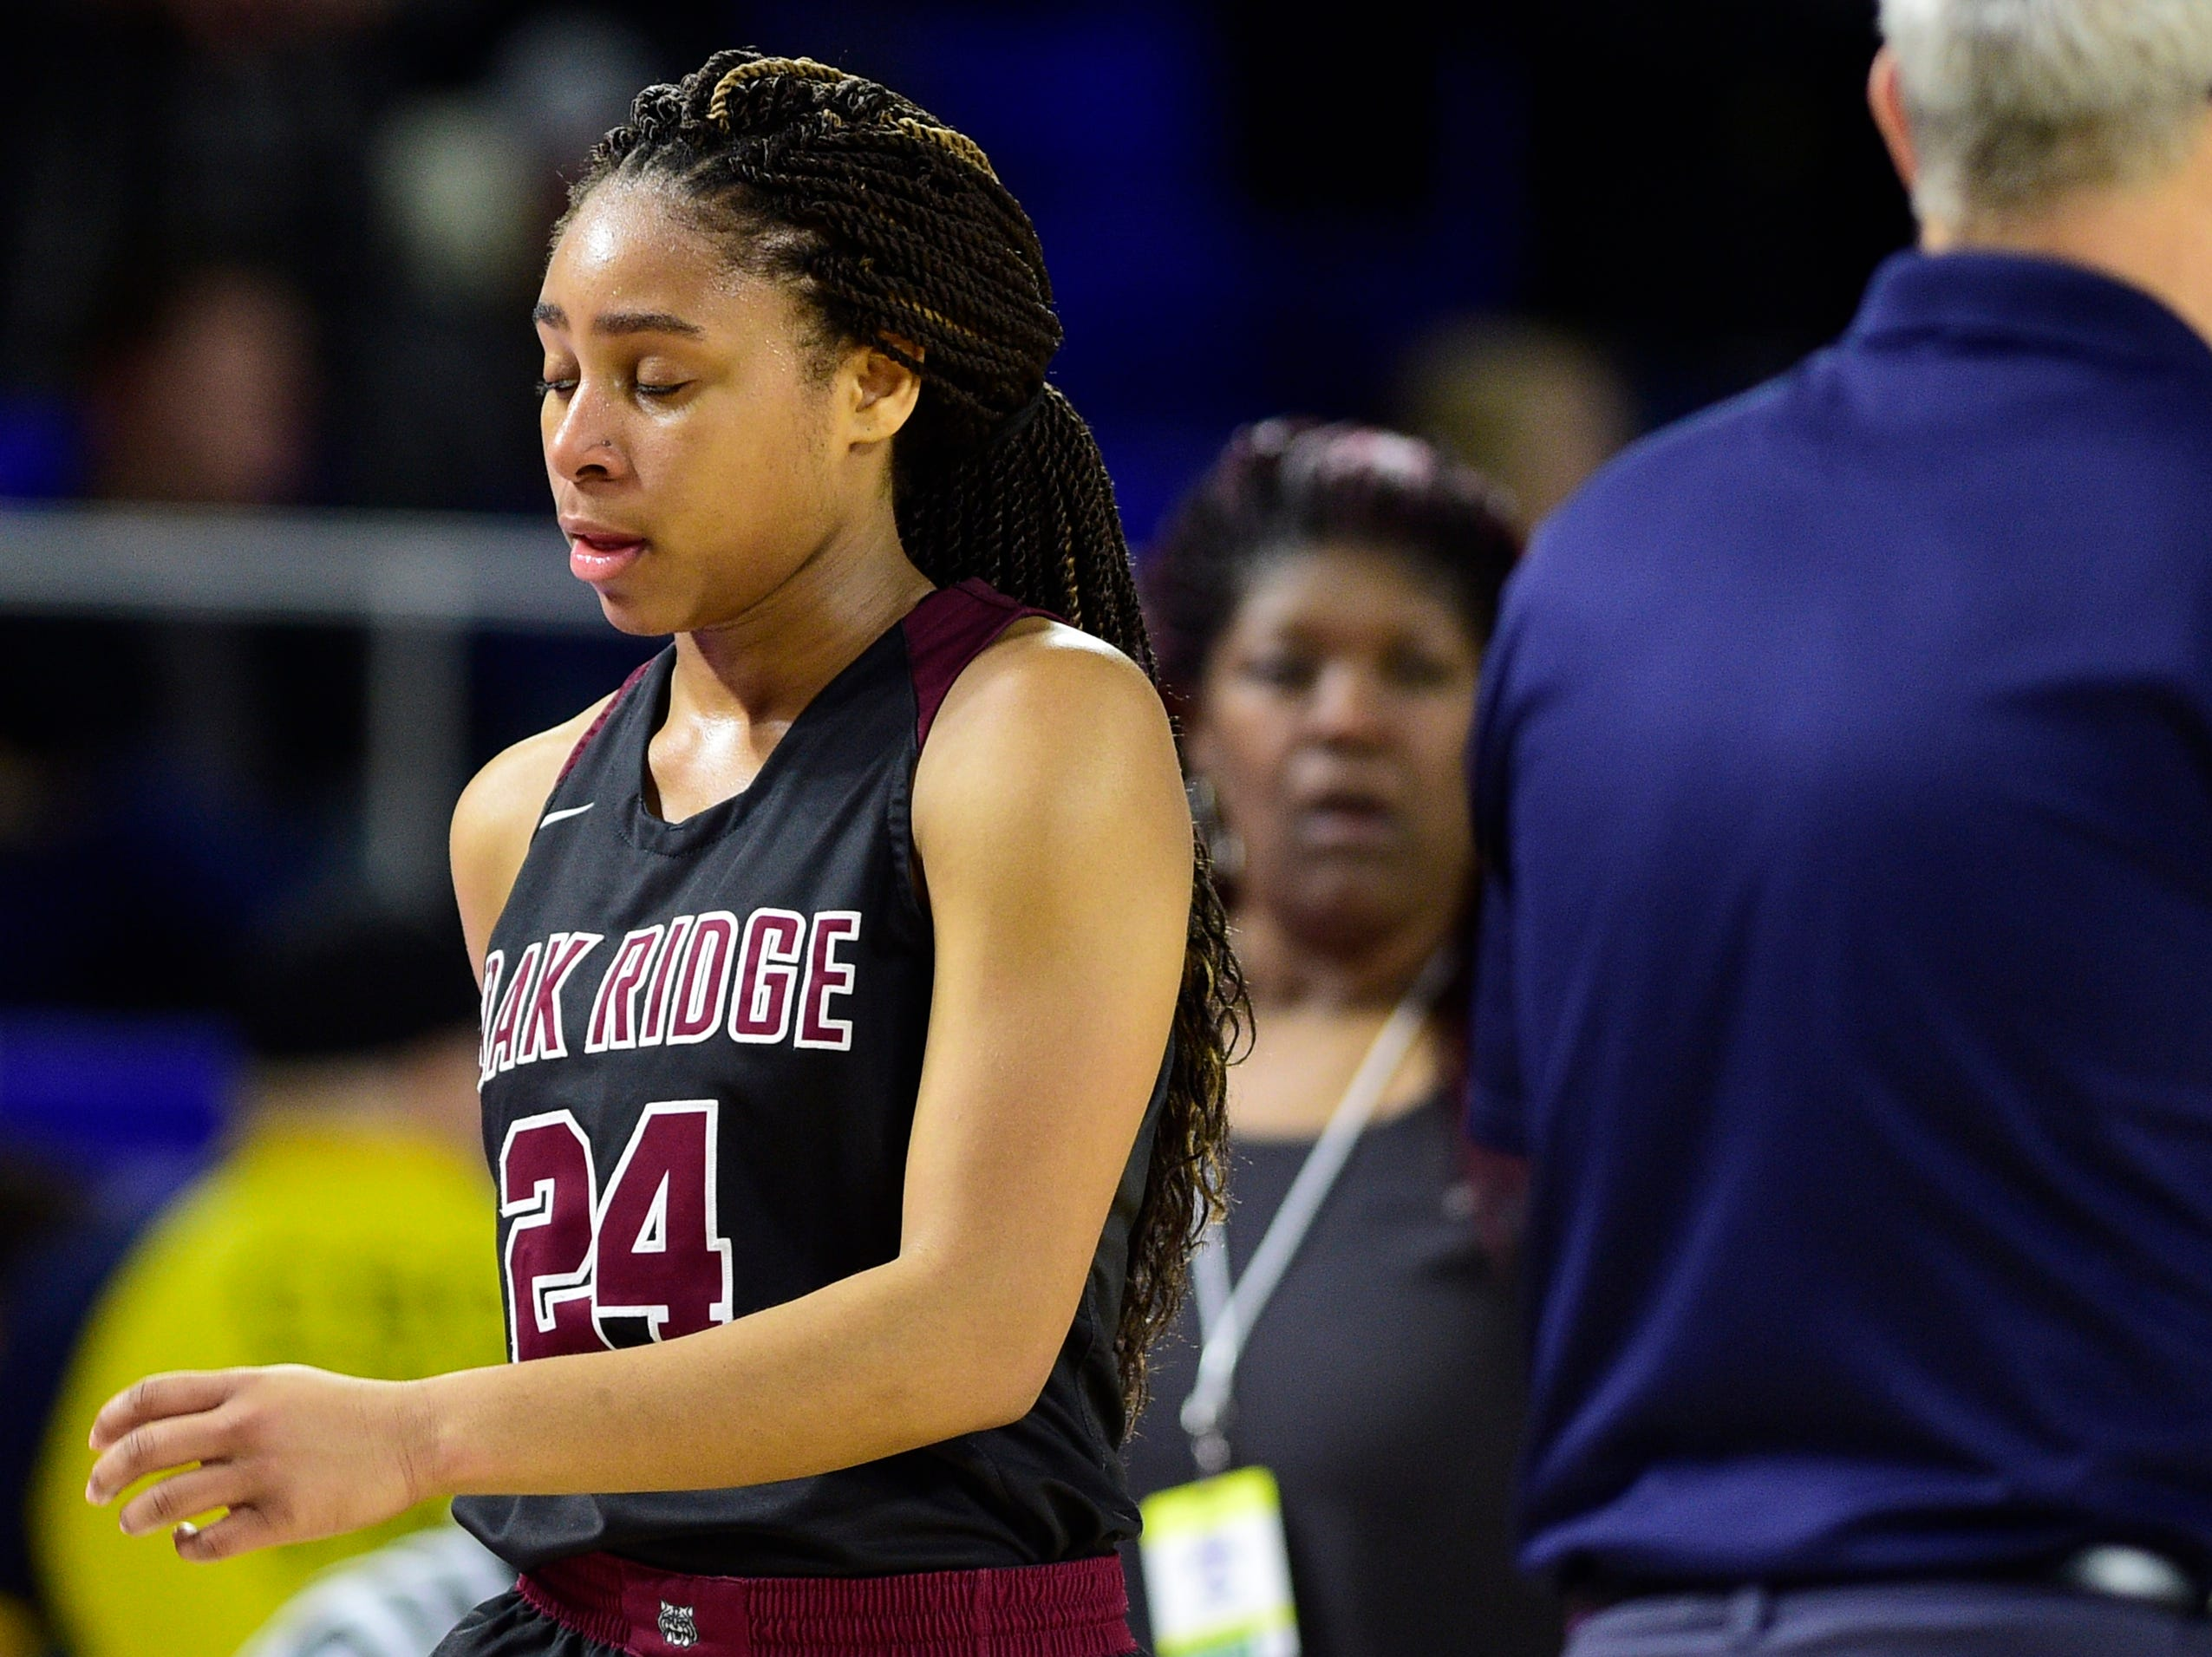 Oak Ridge's Jada Guinn (24) reacts after losing to Bradley Central 56-50 in overtime at the TSSAA girls state tournament at the Murphy Center in Murfreesboro, Tennessee on Friday, March 8, 2019.